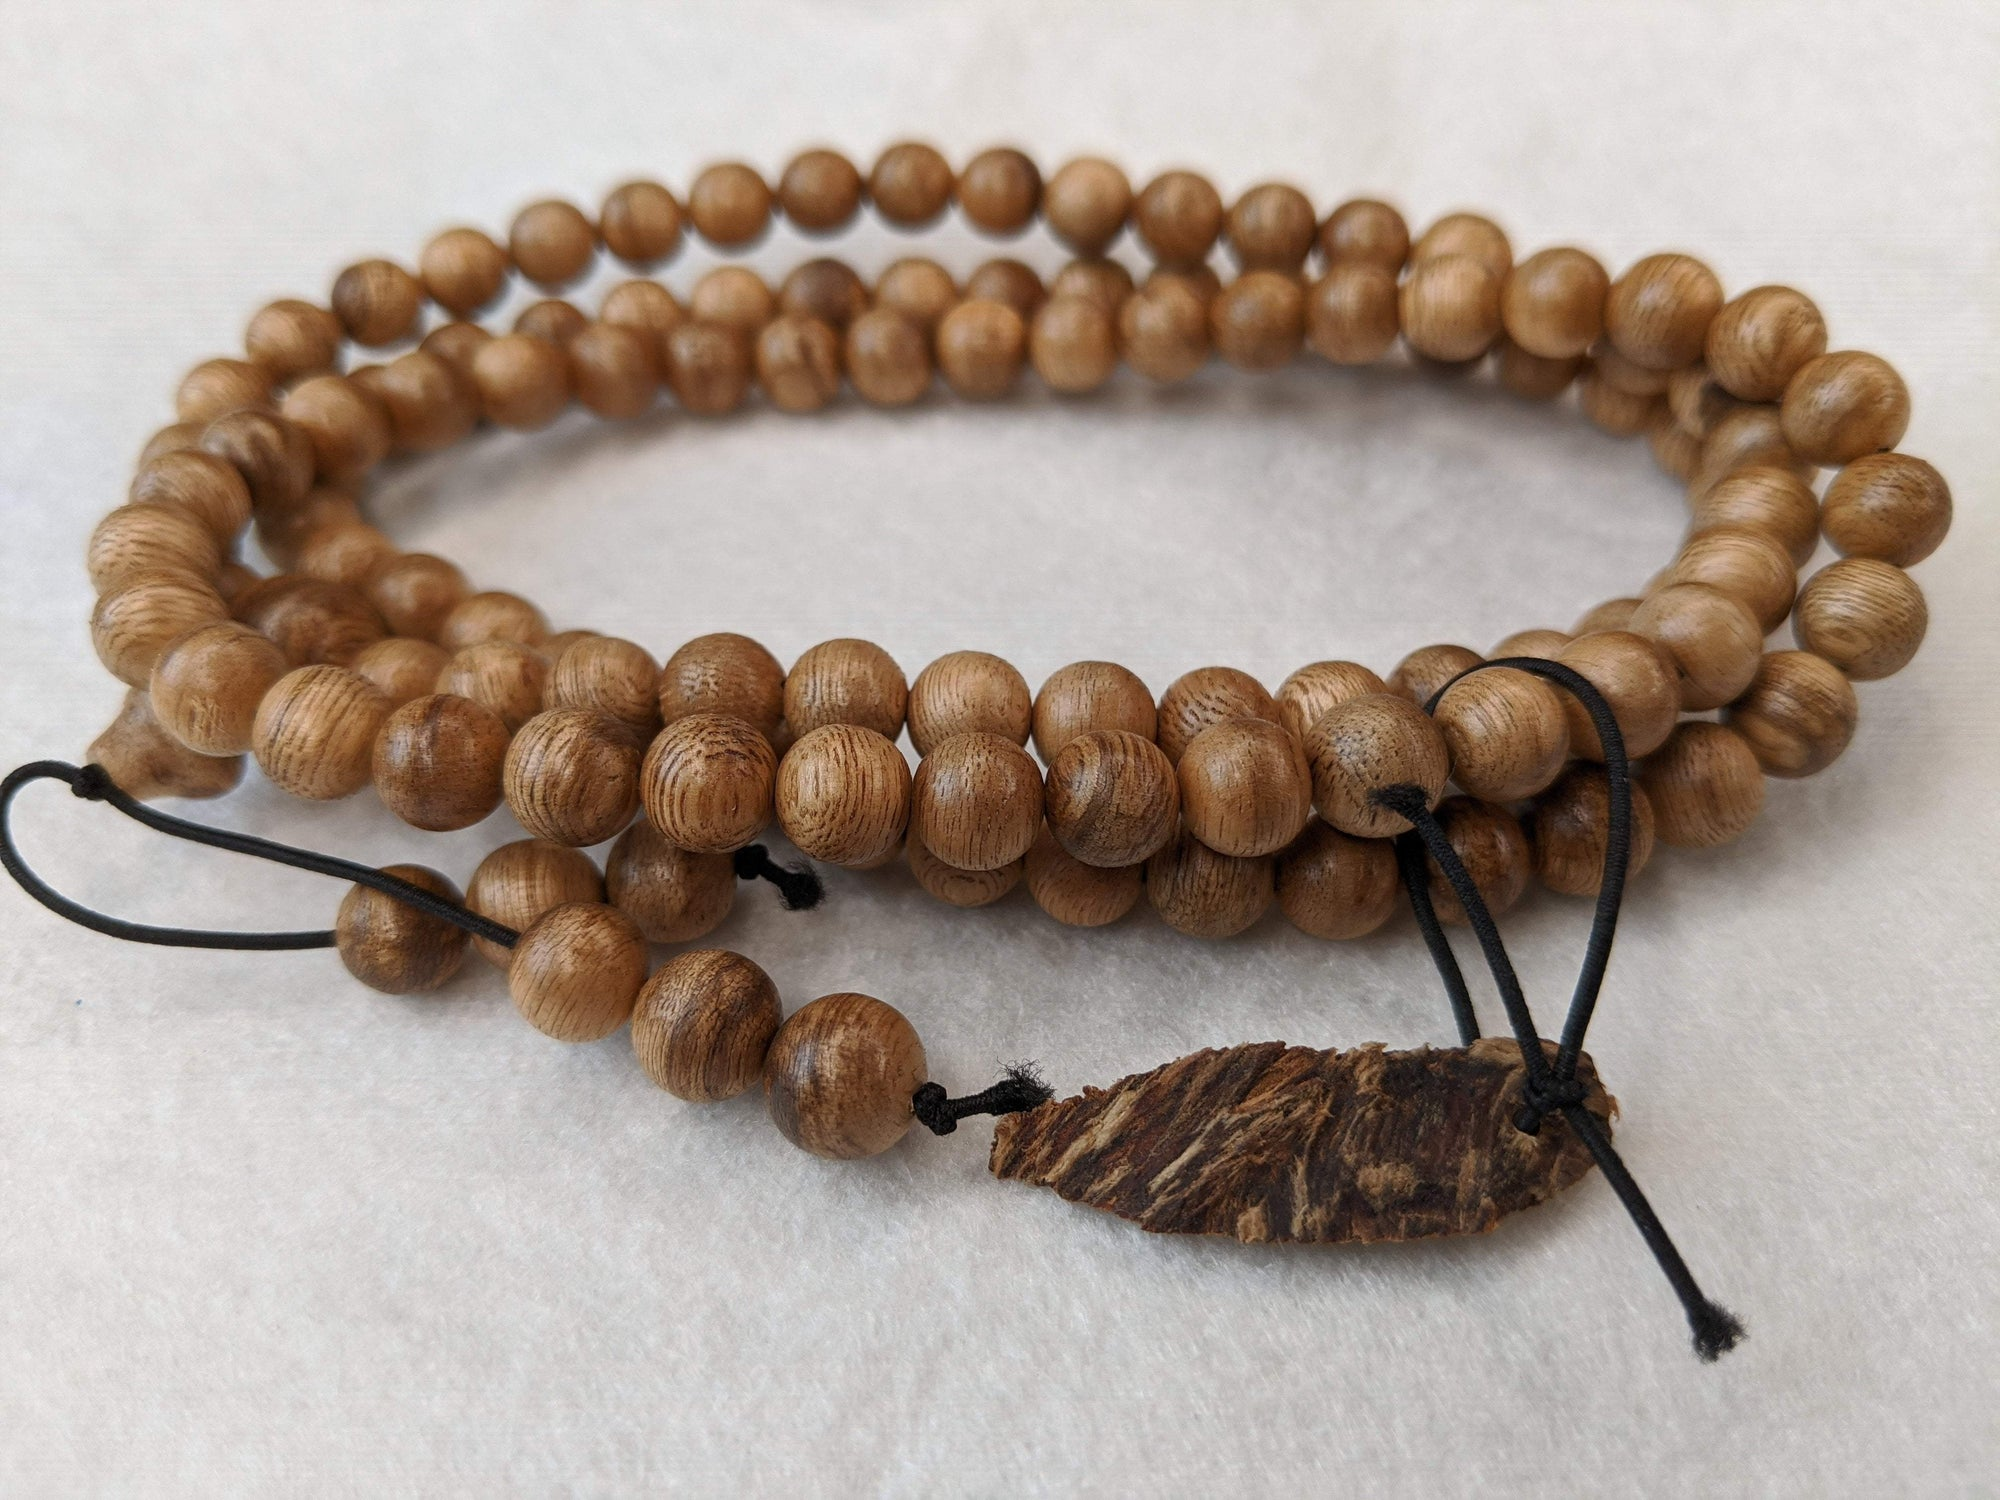 *New* 12.5 g, 8mm, Wild Borneo Agarwood 108 mala with a large piece of remaining material - Grandawood- Agarwood Australia